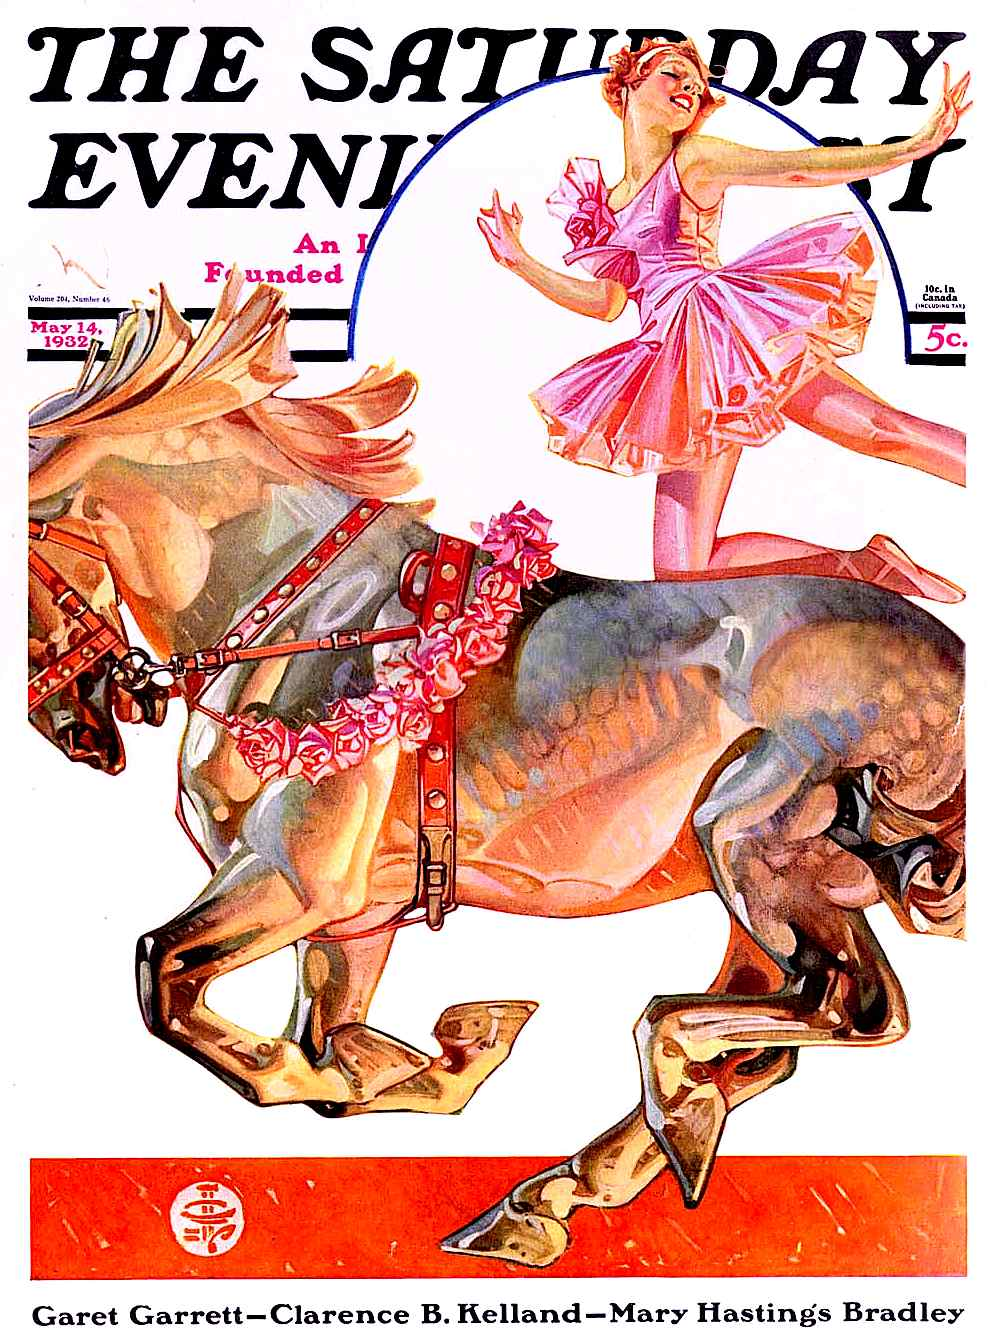 a Joseph Christian Leyendecker illustration of a circus equestrian for The saturday Evening Post May 14 1932